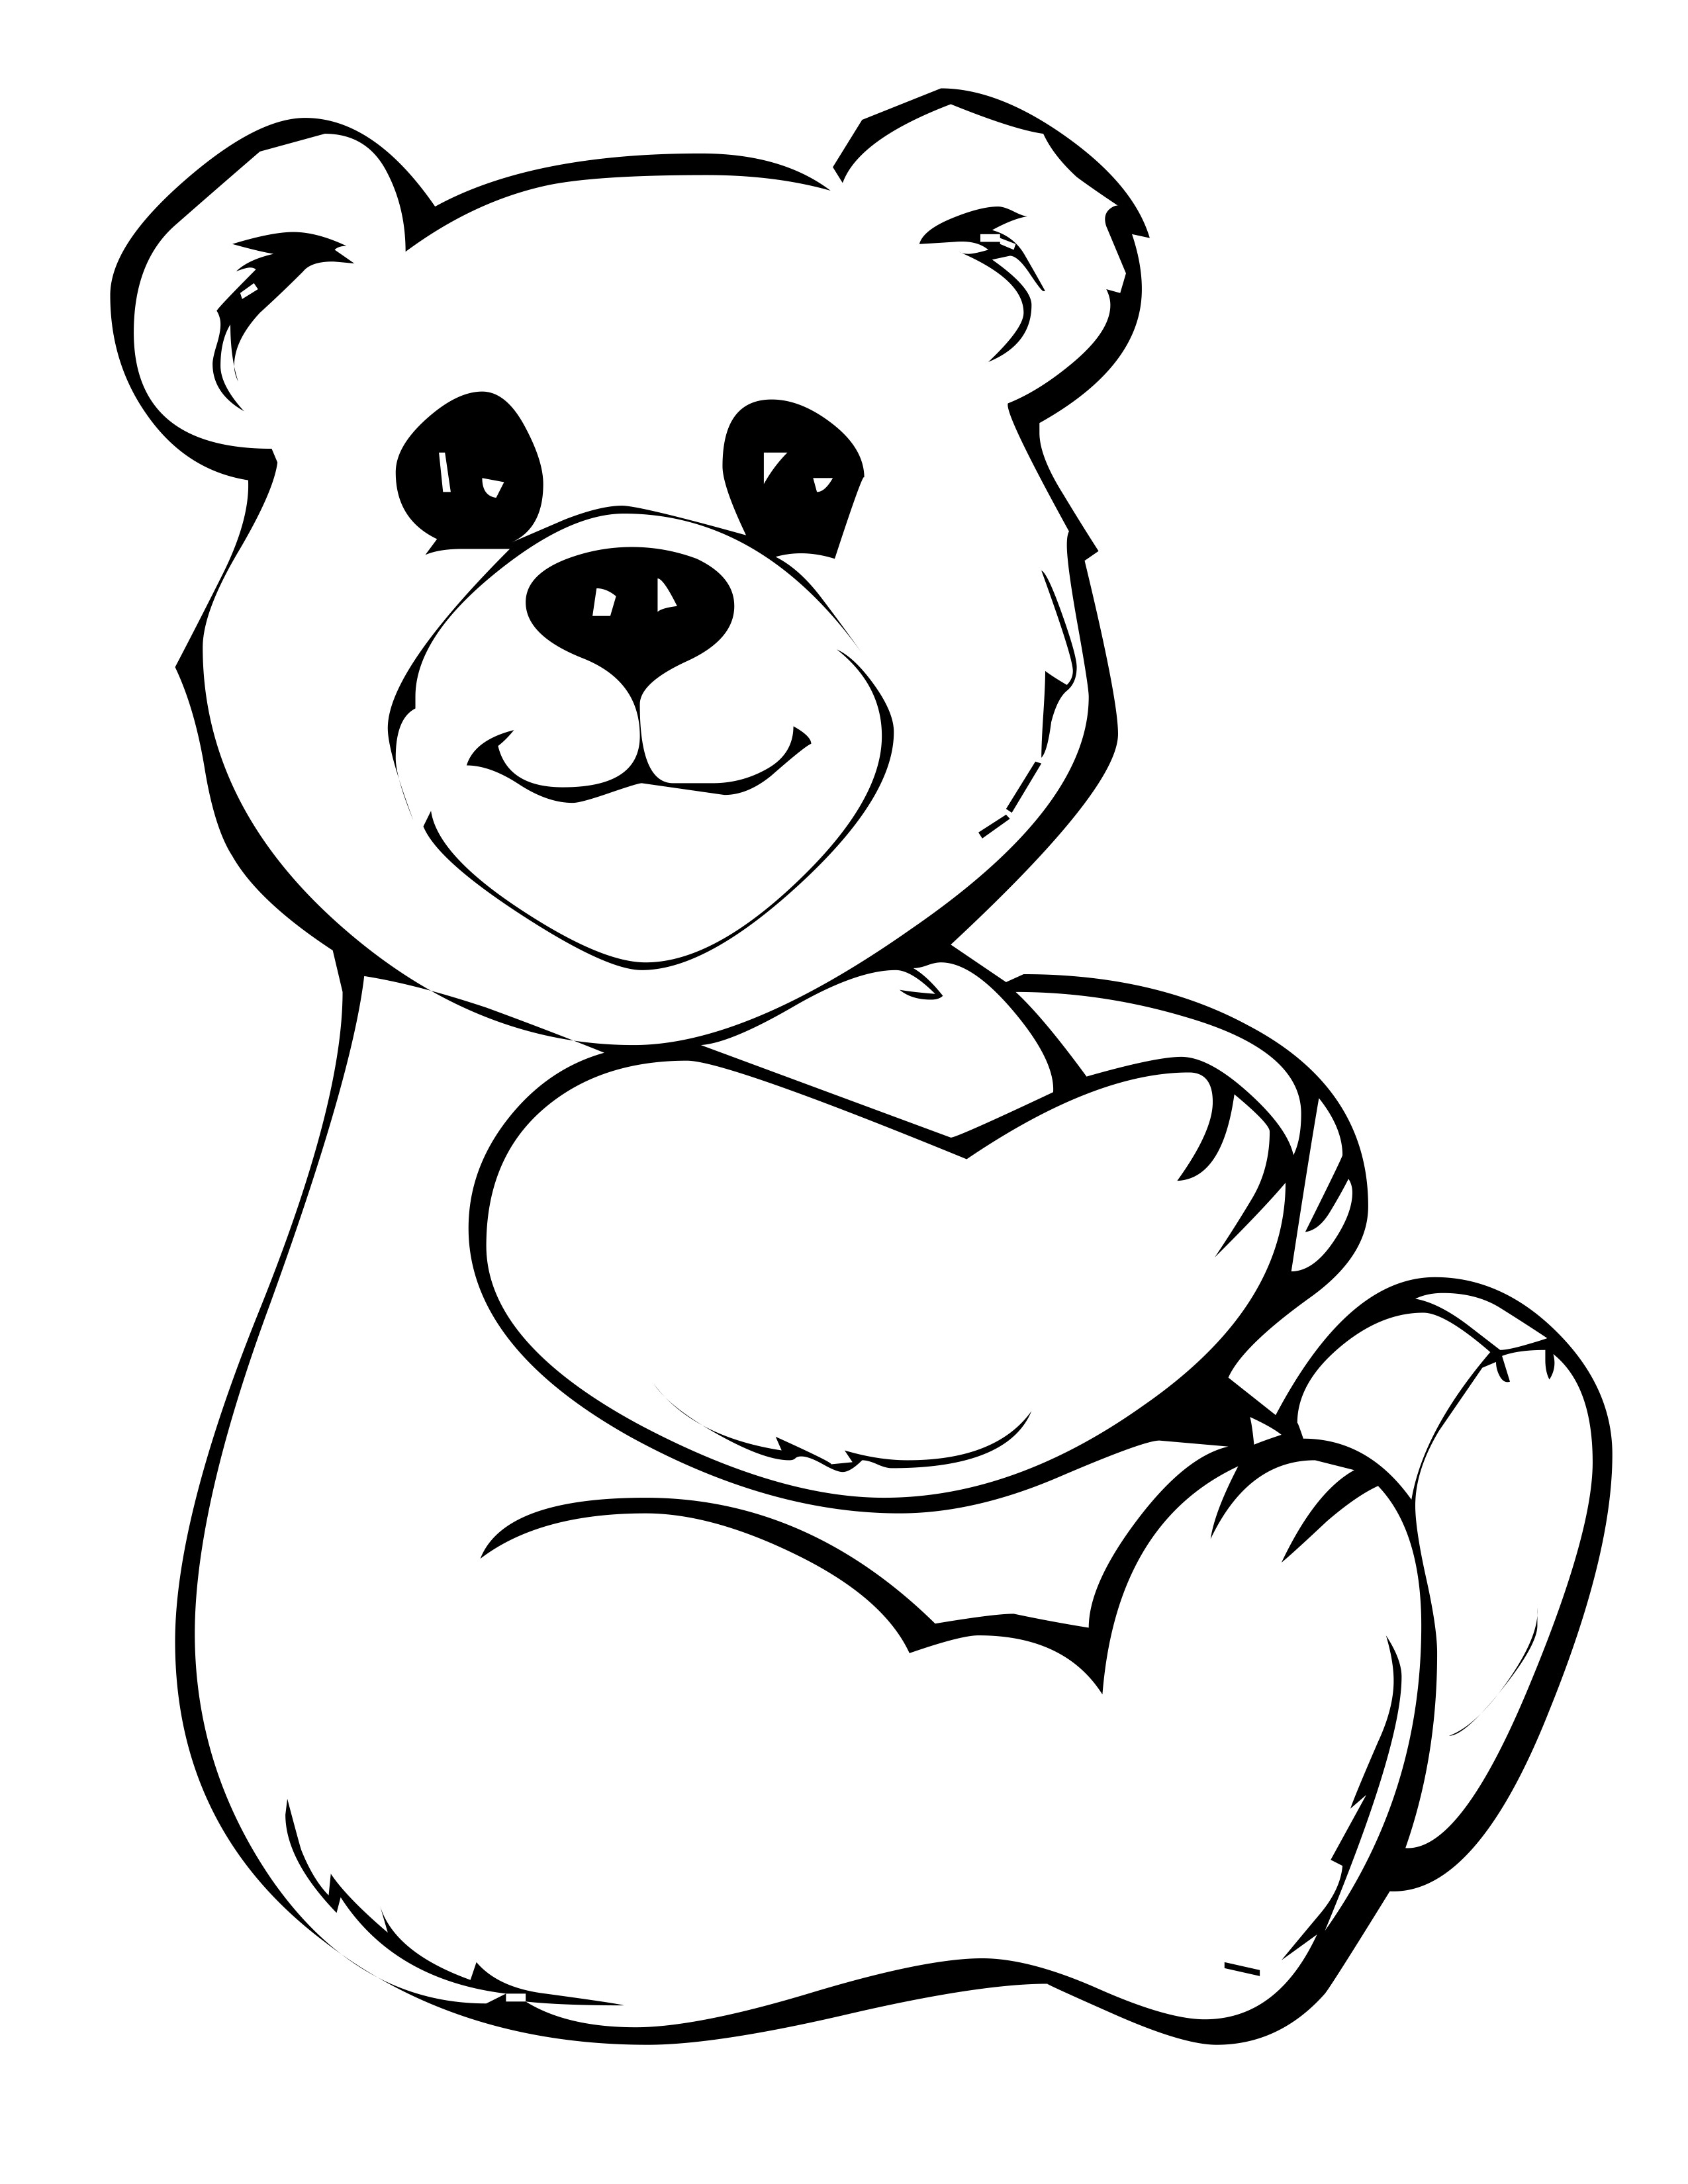 coloring picture of a bear free printable teddy bear coloring pages for kids coloring bear a of picture